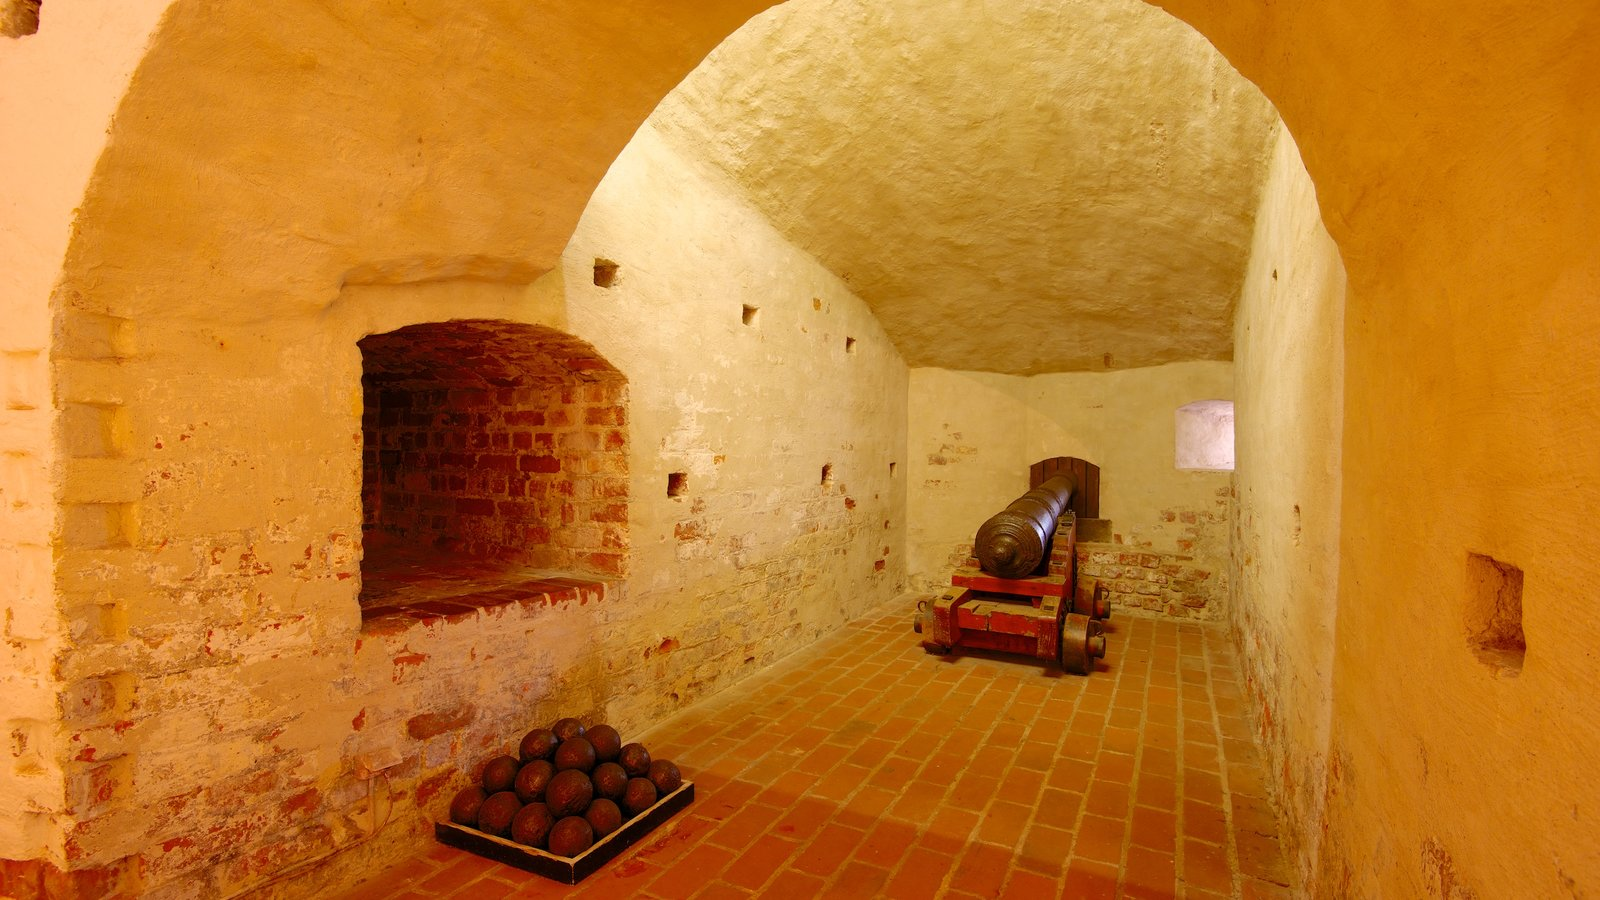 museum pictures: view images of malmo castle